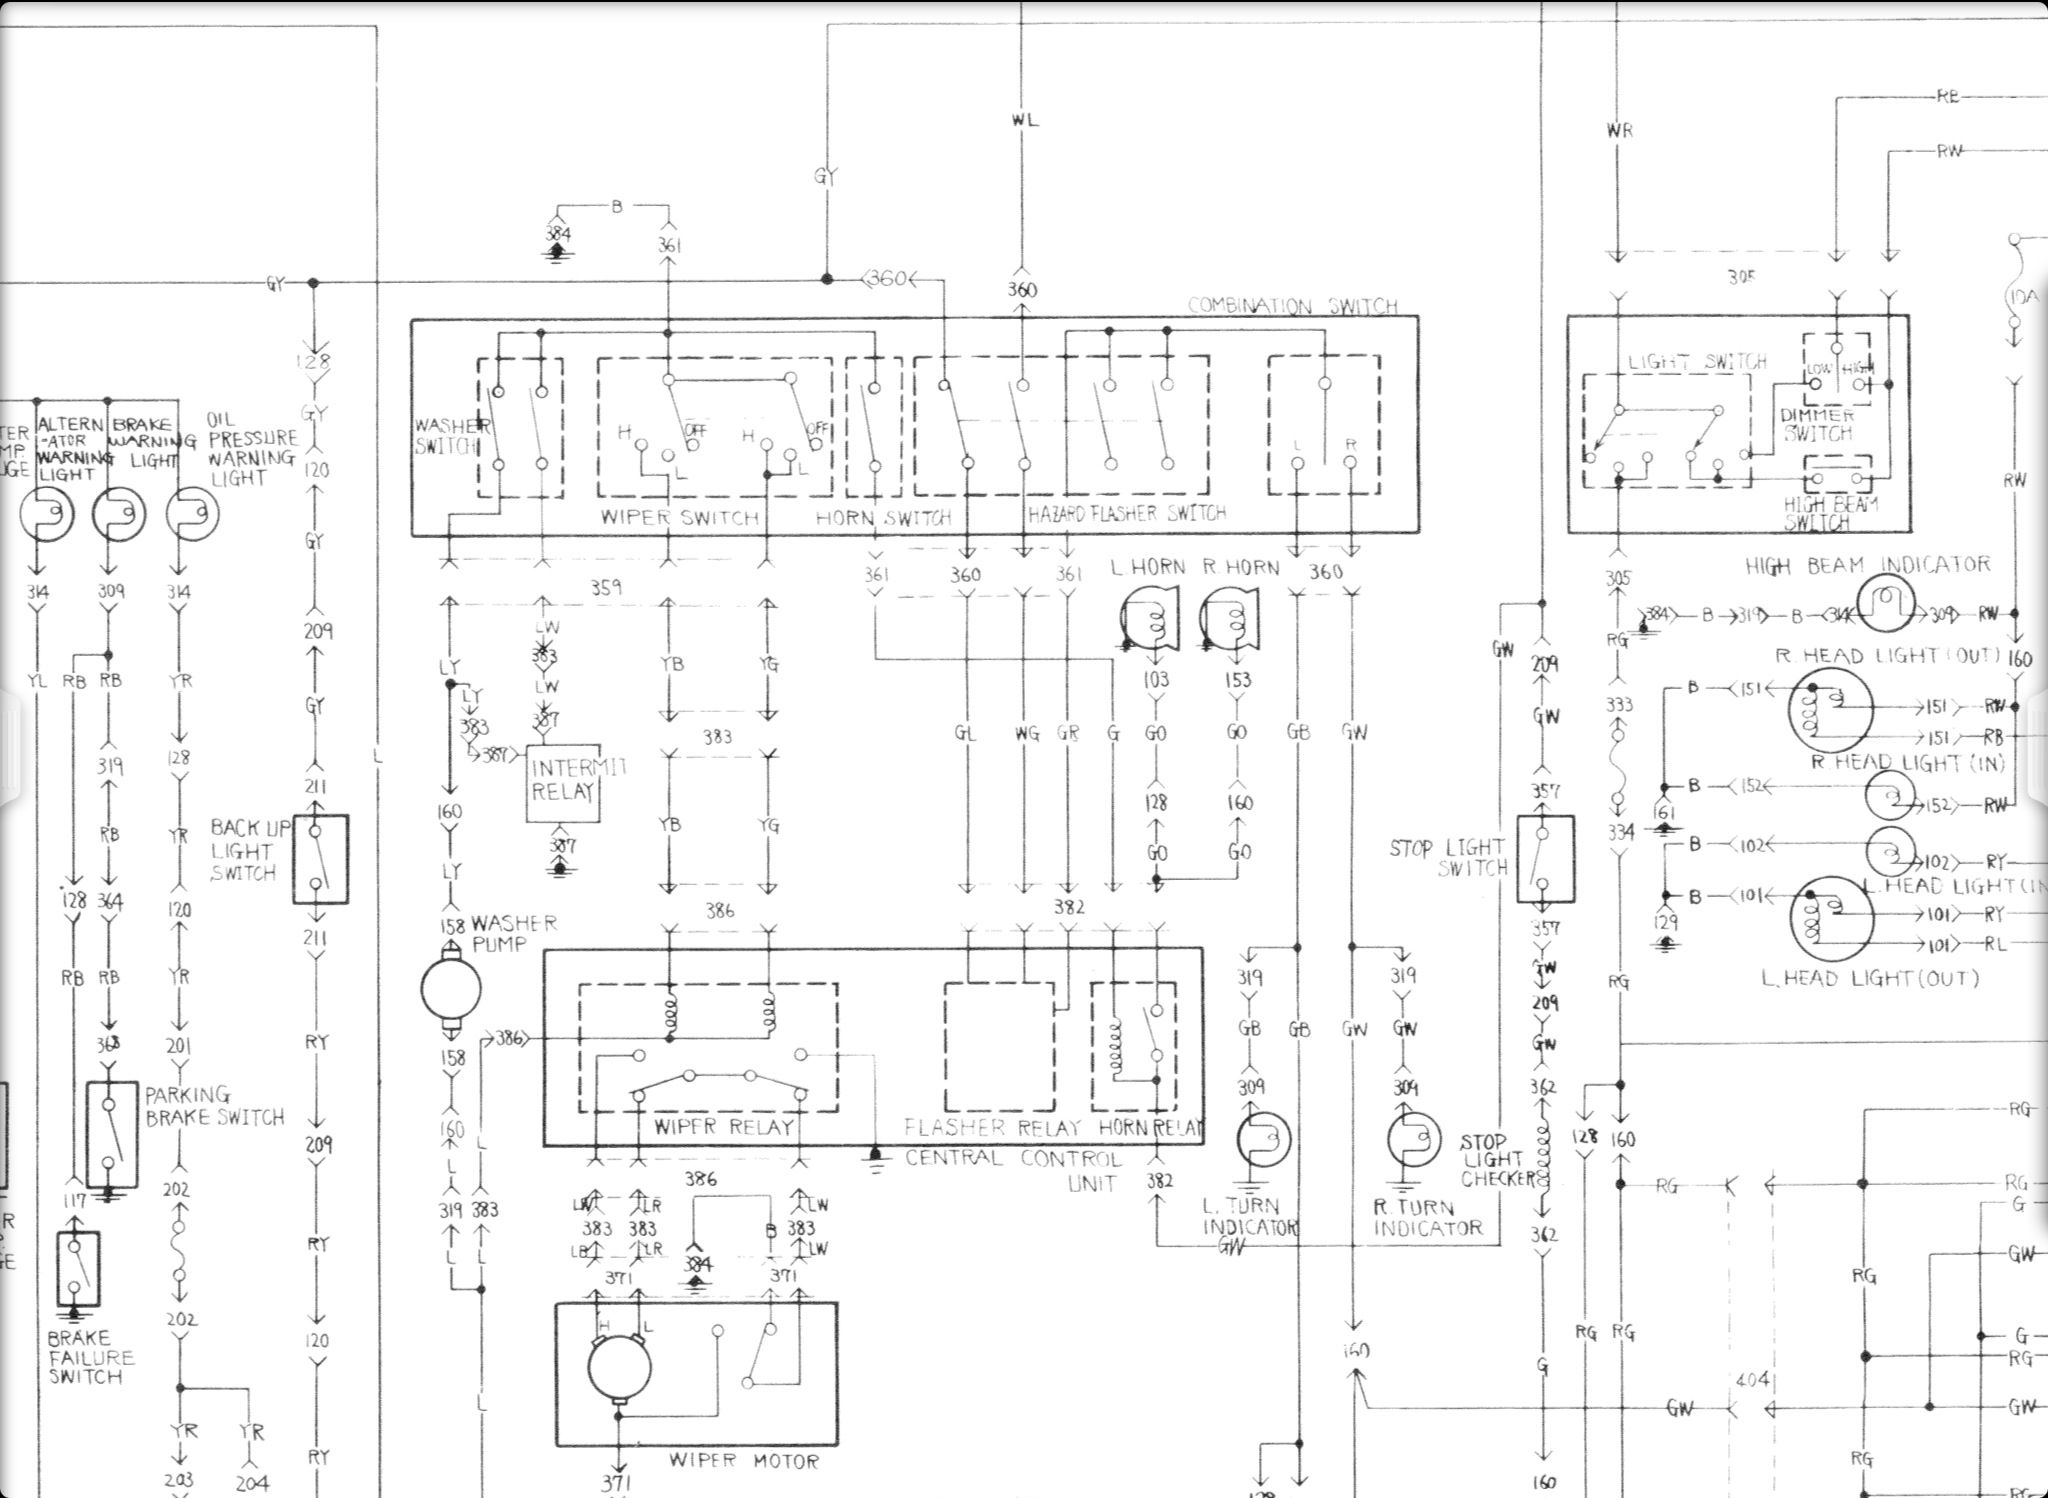 Rx4 register and records page 136 ausrotary mazda rx4 wiring diagram 5 mazda rx4 wiring diagram